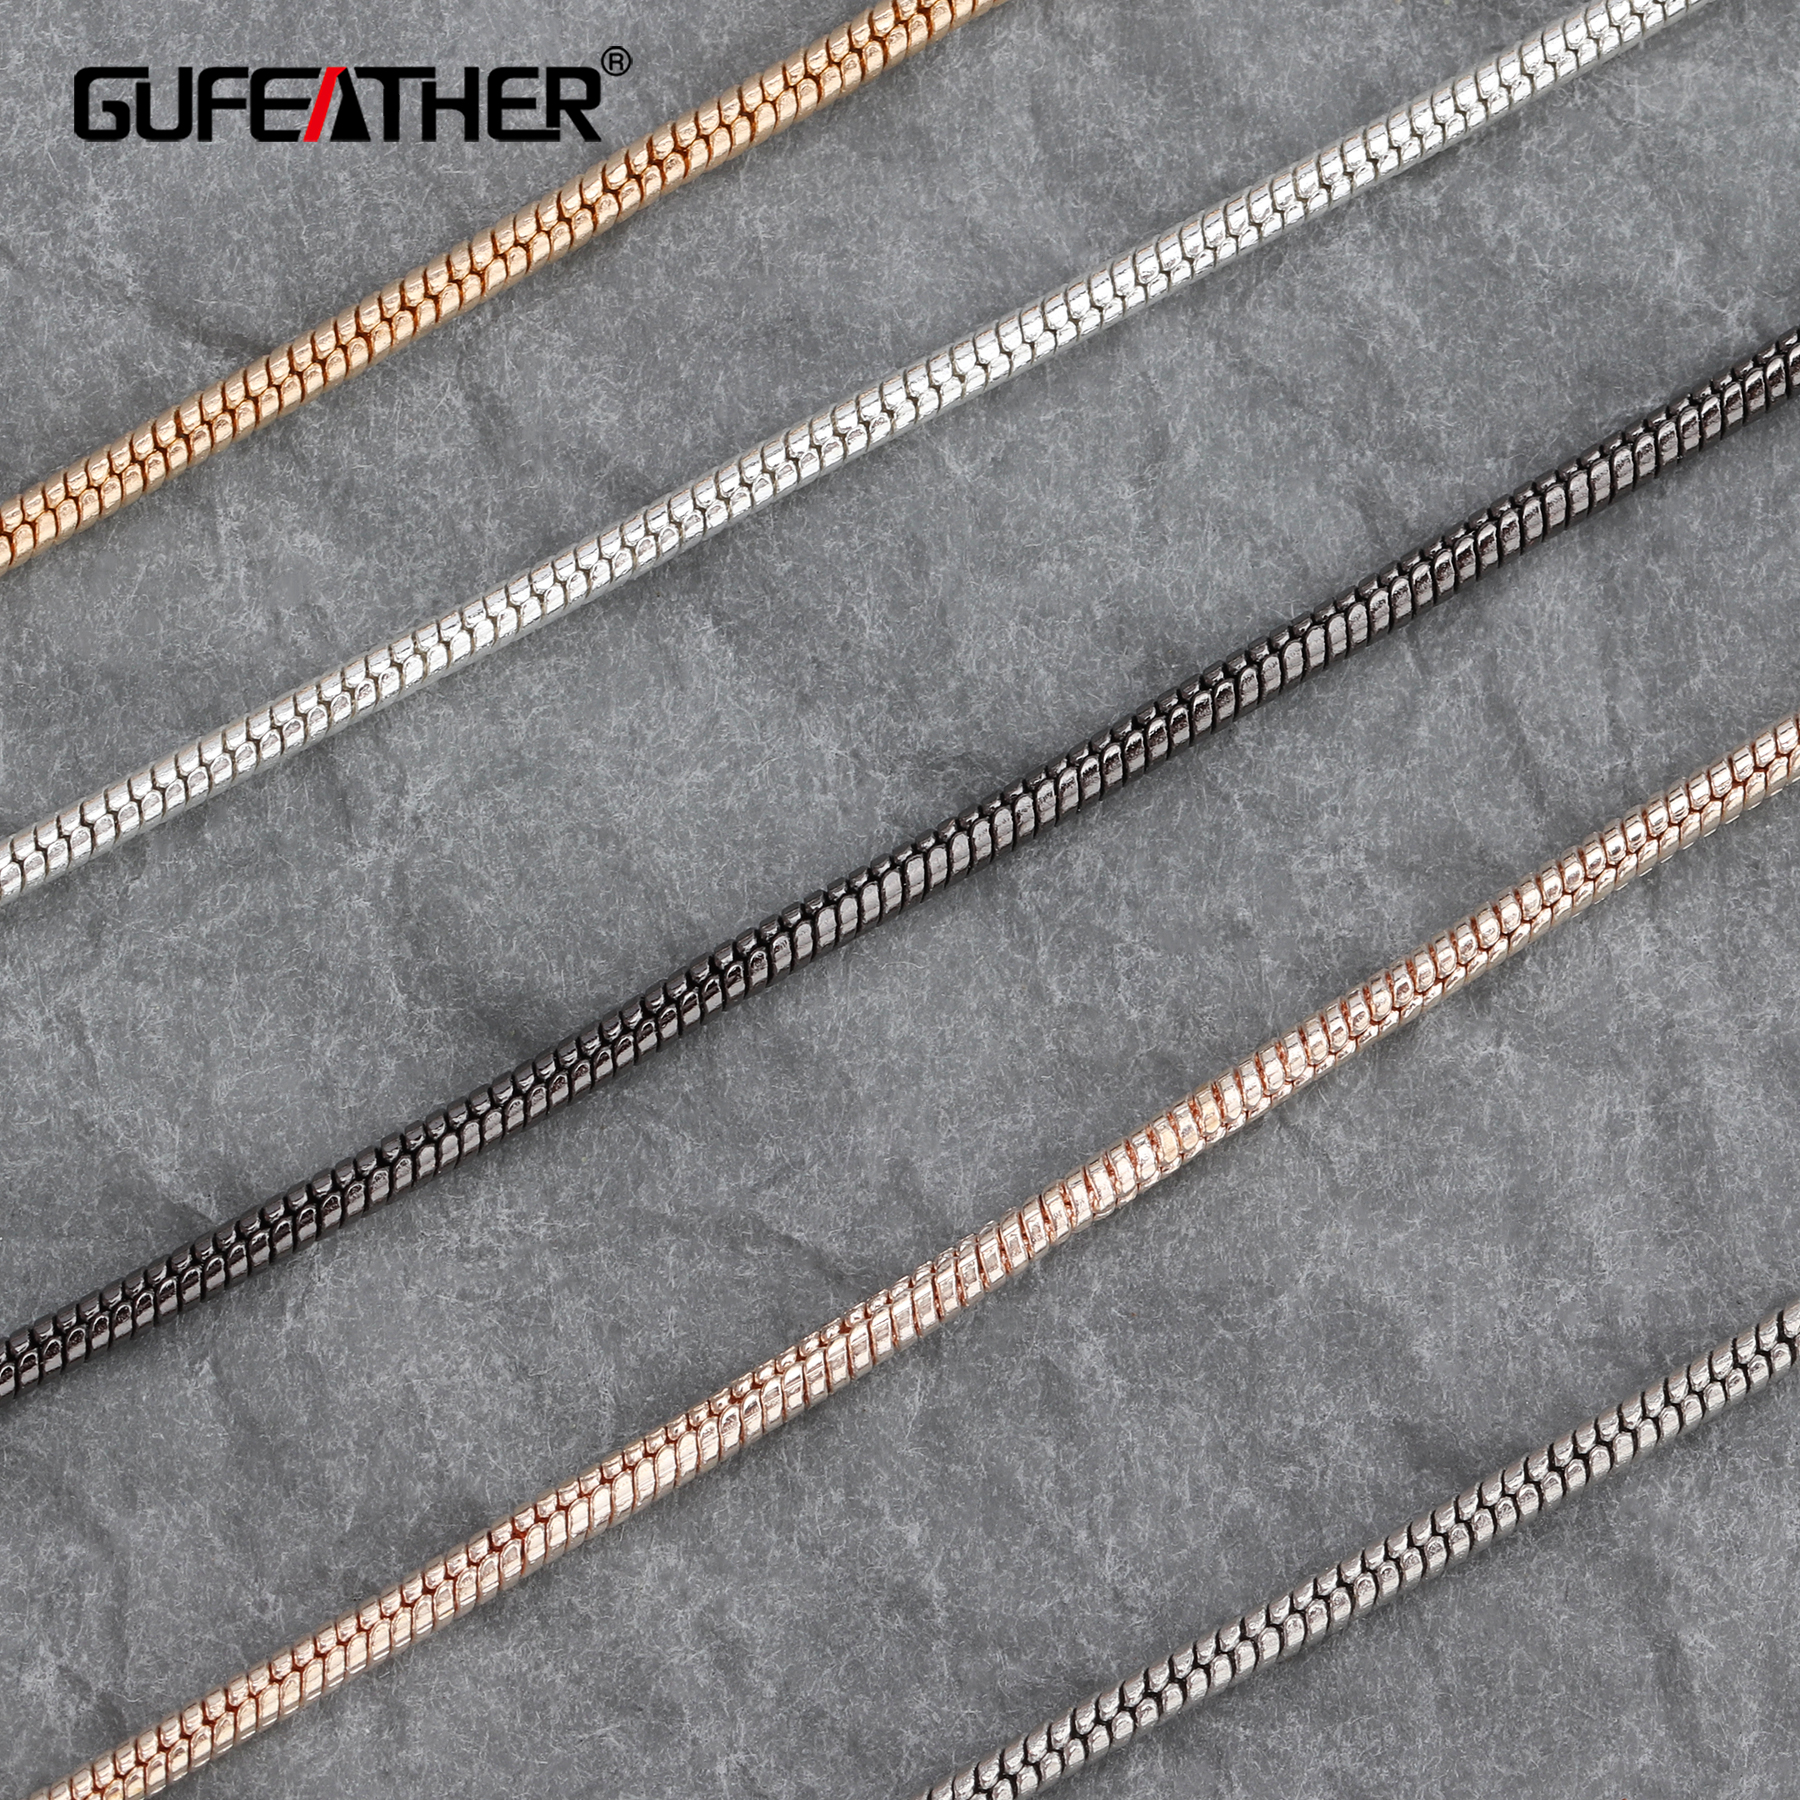 DIY chain gold silver black snake chain Fine chain Bracelet necklace making materials 1.2mm (0.047) 100cm